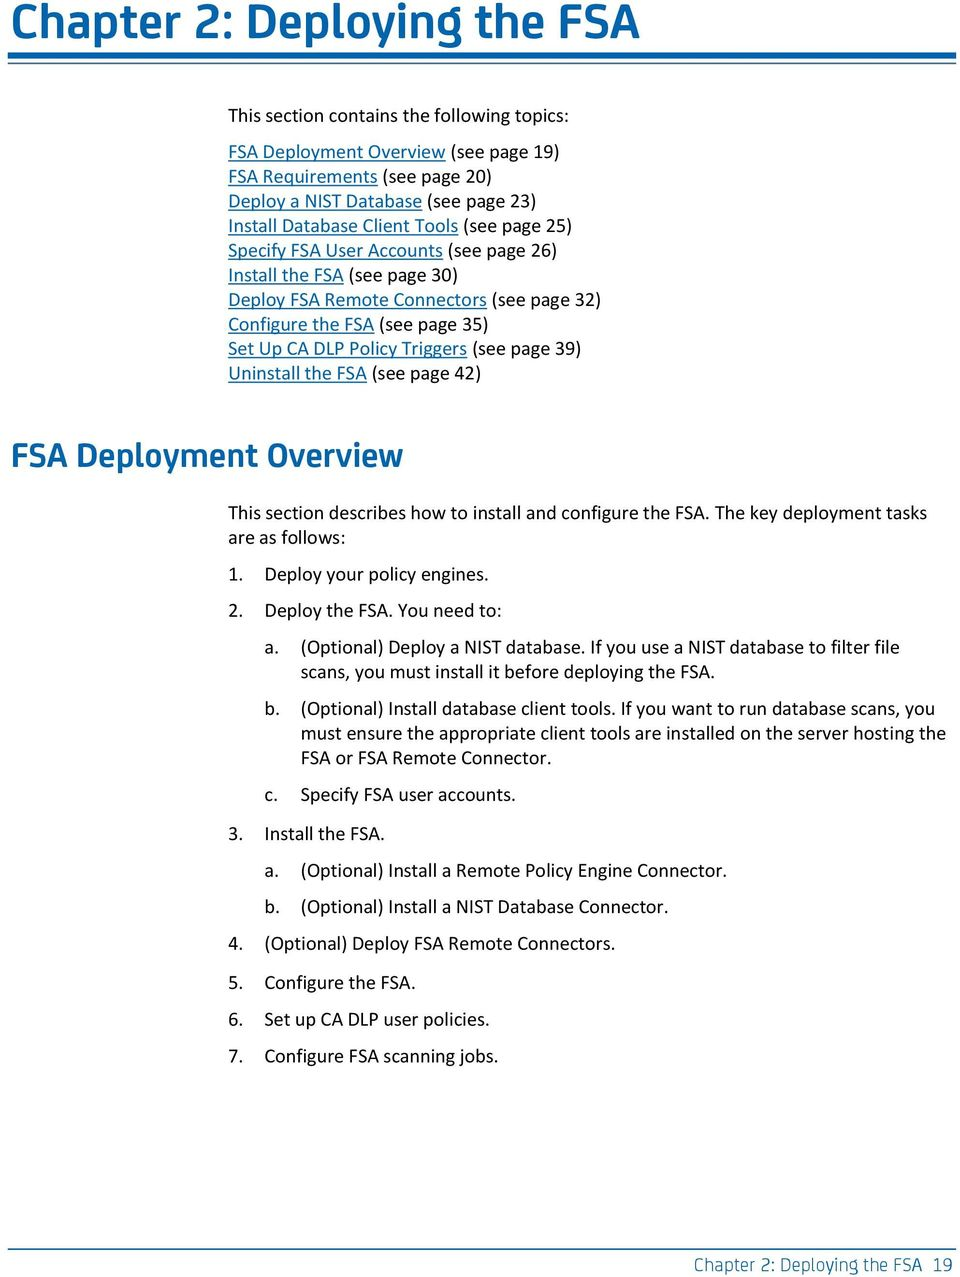 Triggers (see page 39) Uninstall the FSA (see page 42) FSA Deployment Overview This section describes how to install and configure the FSA. The key deployment tasks are as follows: 1.